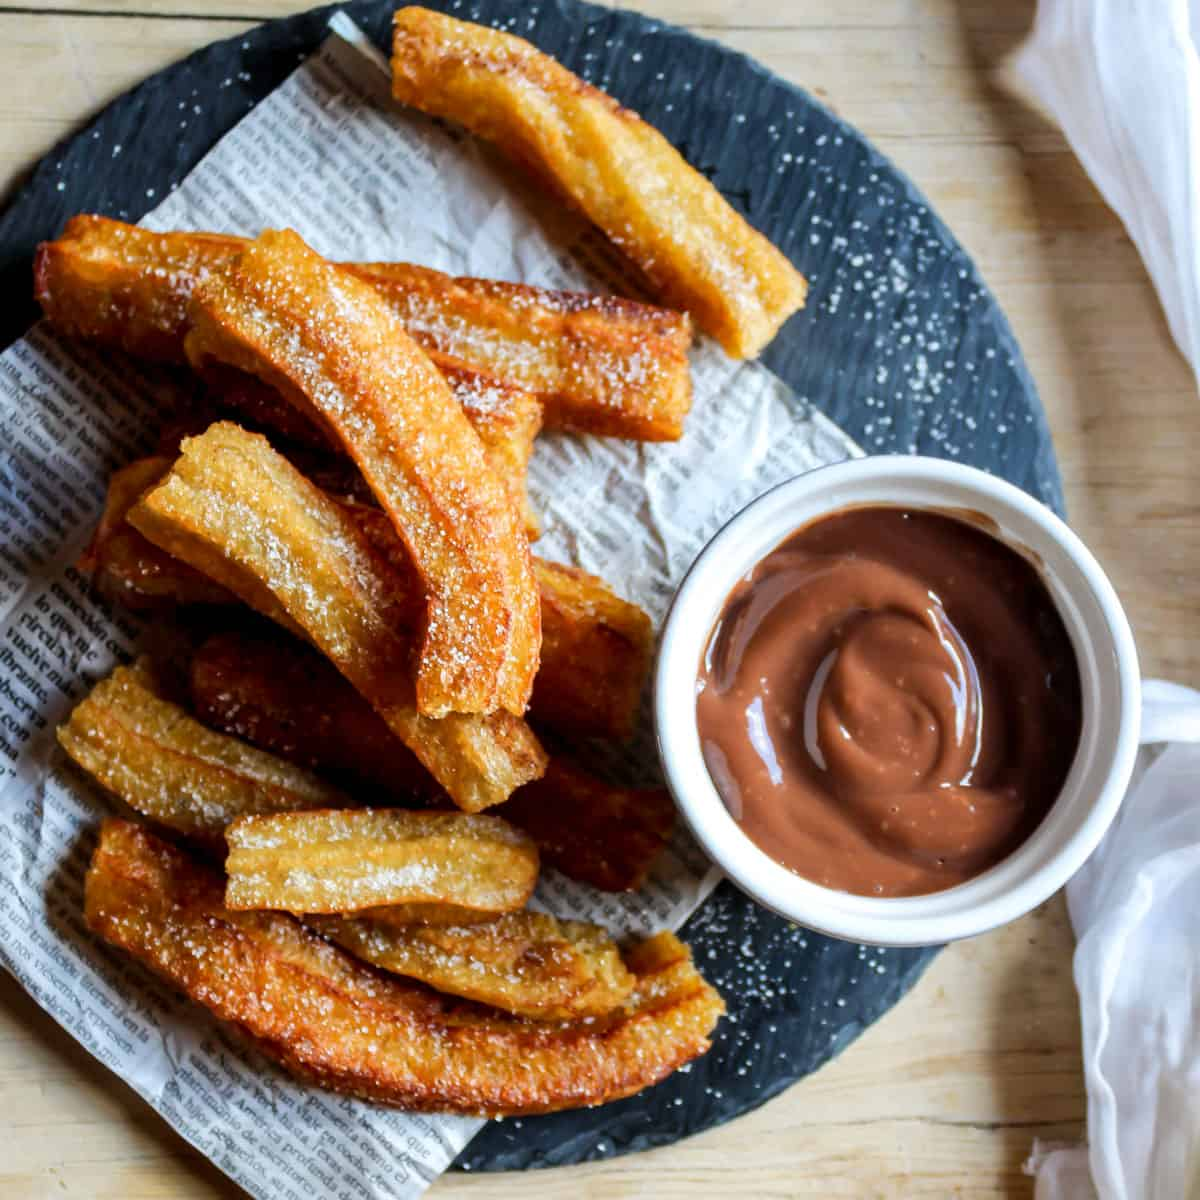 Looking down at a plate of churros and chocolate dipping sauce.